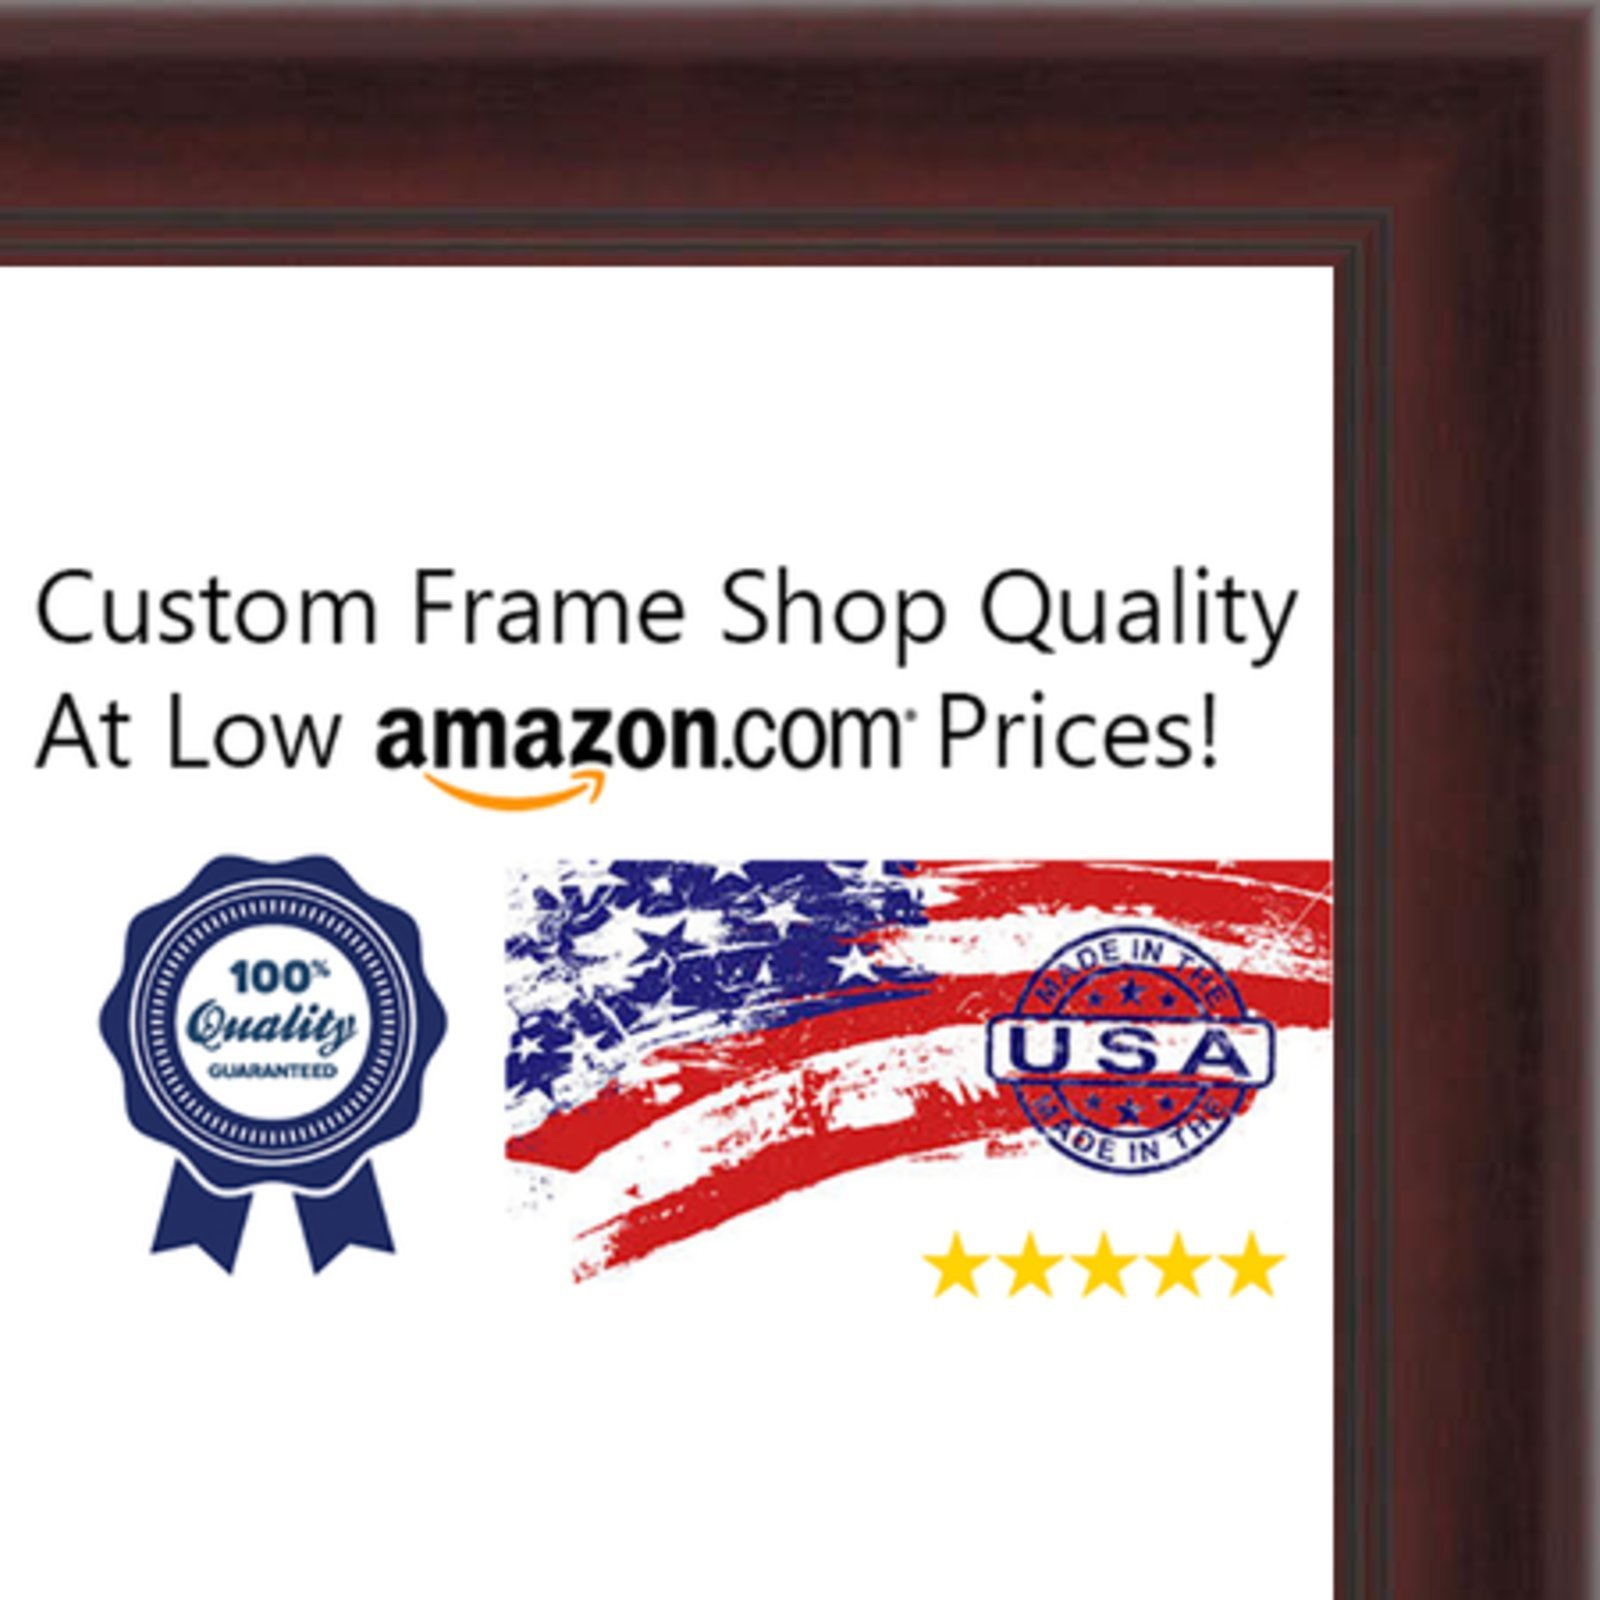 27x39 Contemporary Mahogany Wood Picture Frame - UV Acrylic, Foam Board Backing, & Hanging Hardware Included!